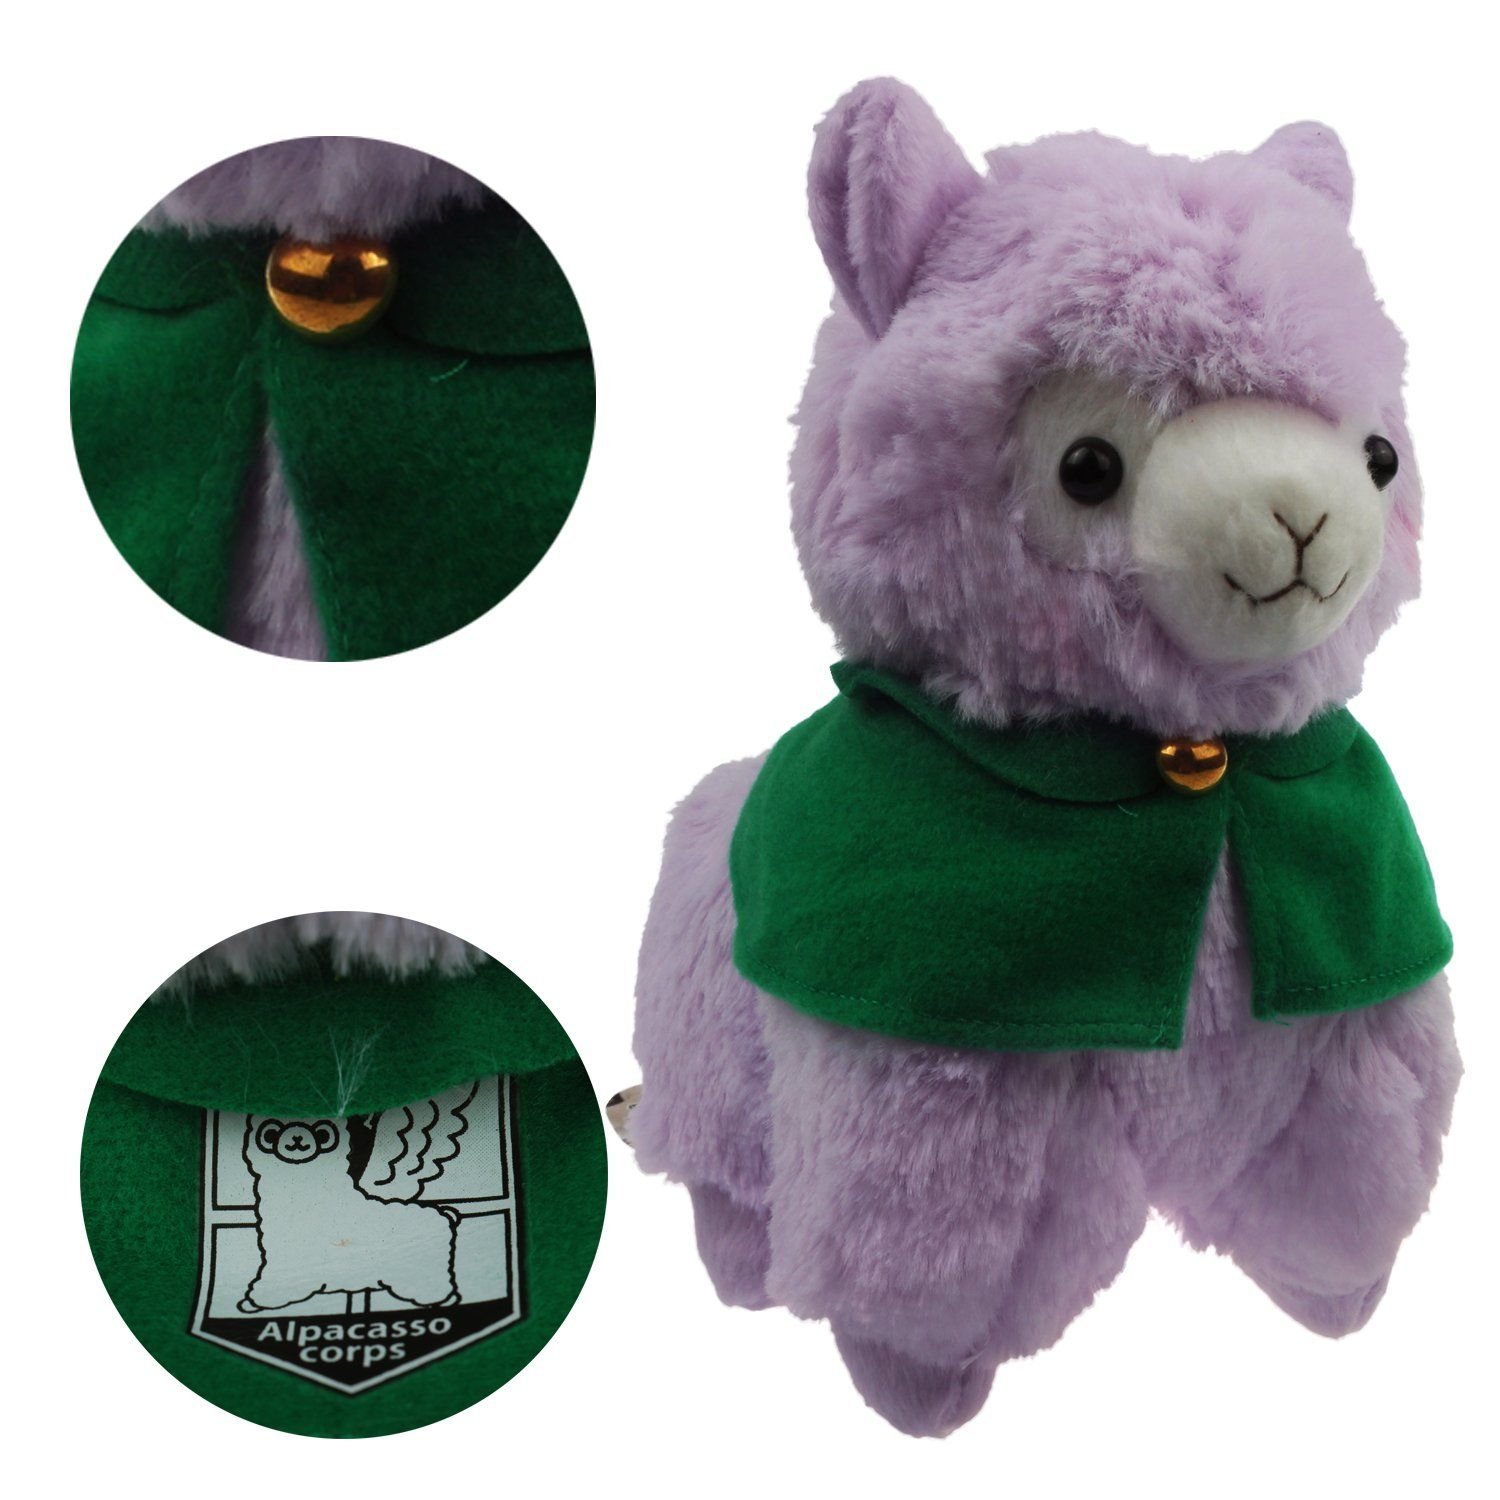 Amazon.com: KSB 7.3'' Purple Cloak Plush Alpaca,Cute Soft Plush Stuffed Animals Doll Toys,Best Birthday Gifts For The Children Kids: Toys & Games